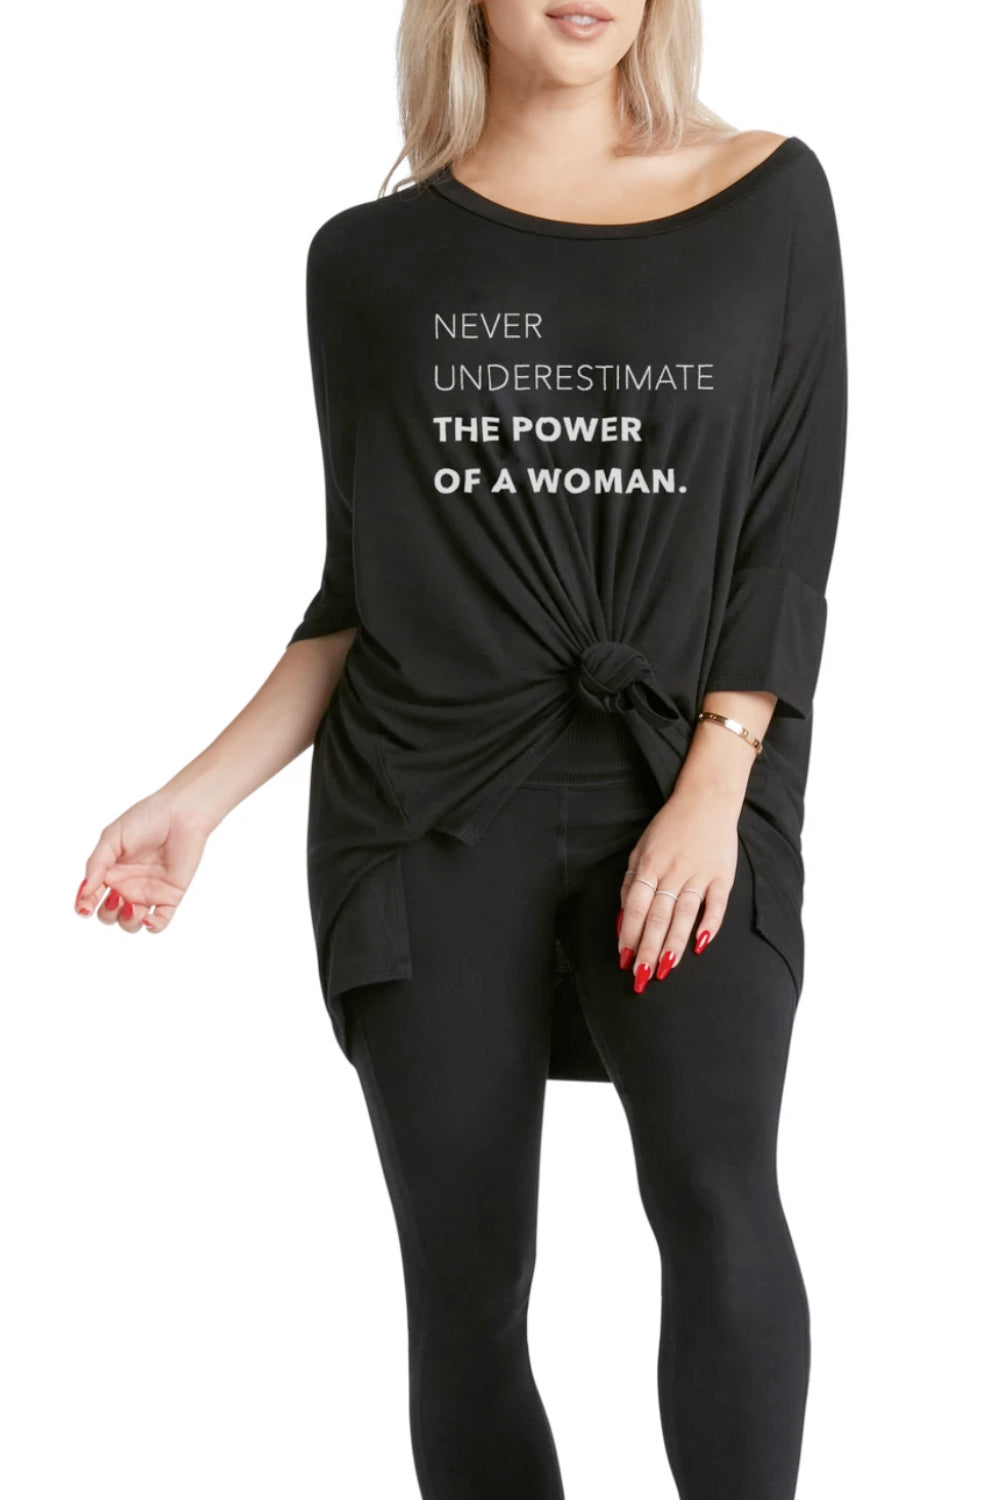 MIMI TEE - Never Underestimate The Power of a Woman